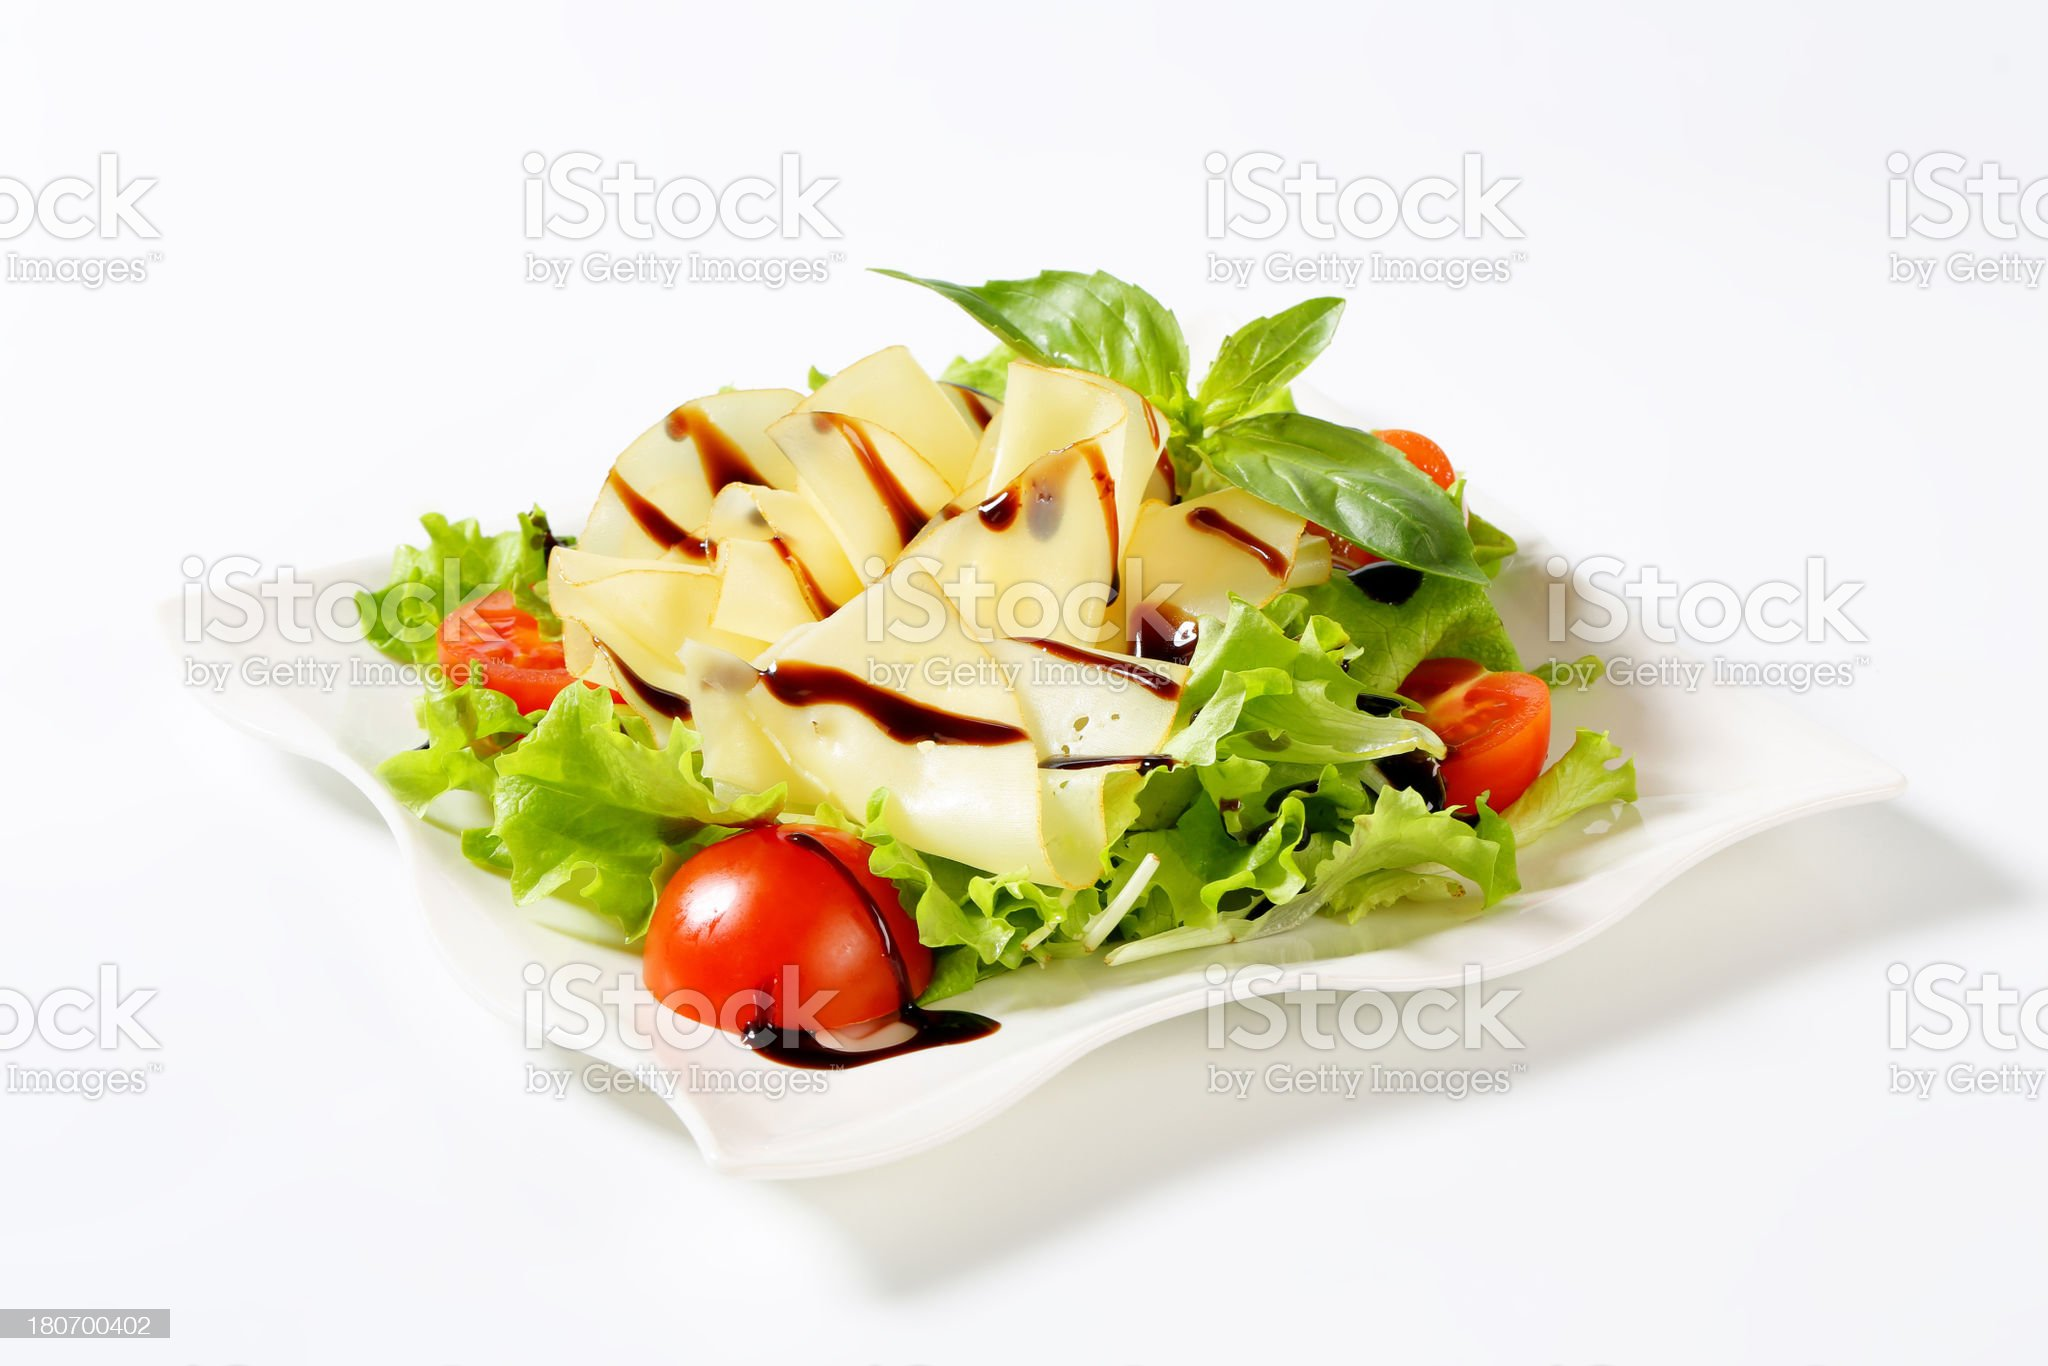 cheese and vegetable salad royalty-free stock photo